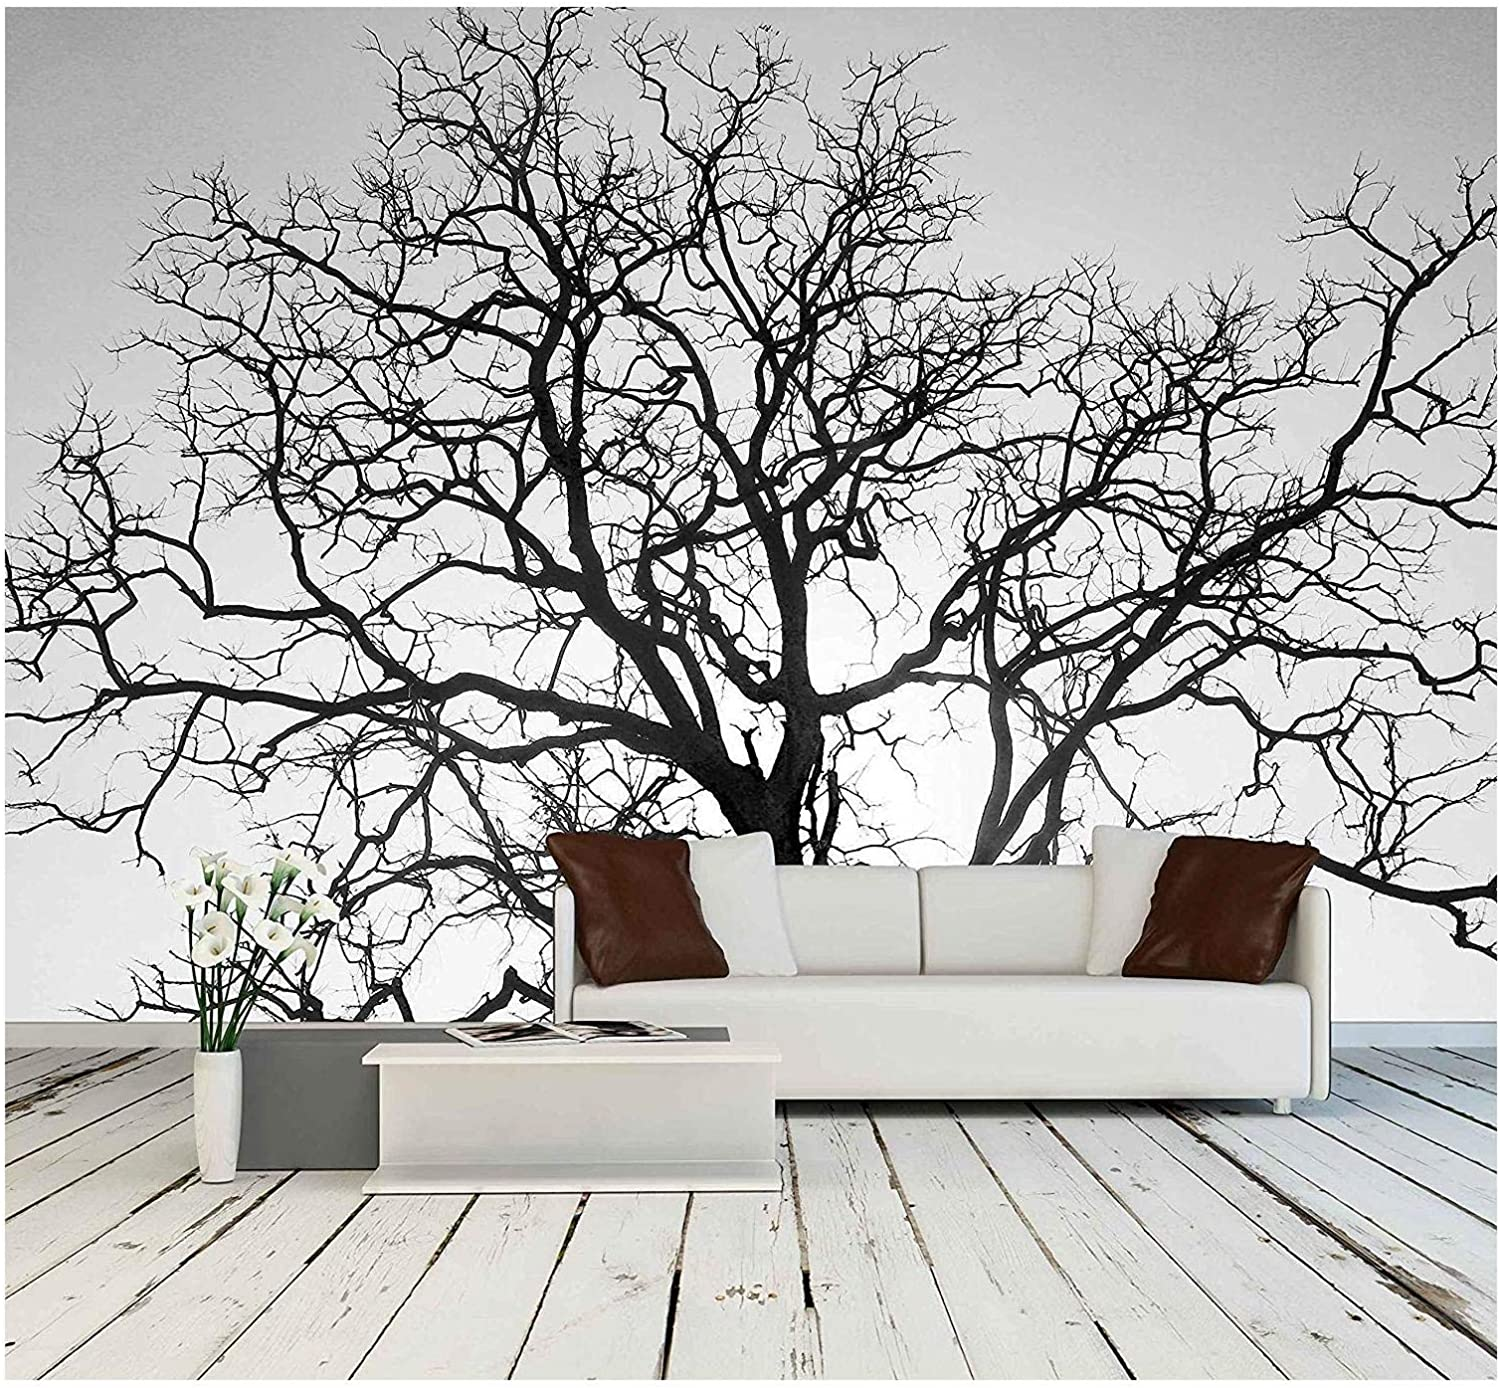 wall26 - Dead Tree Branch, Black and White - Removable Wall Mural | Self-Adhesive Large Wallpaper - 100x144 inches